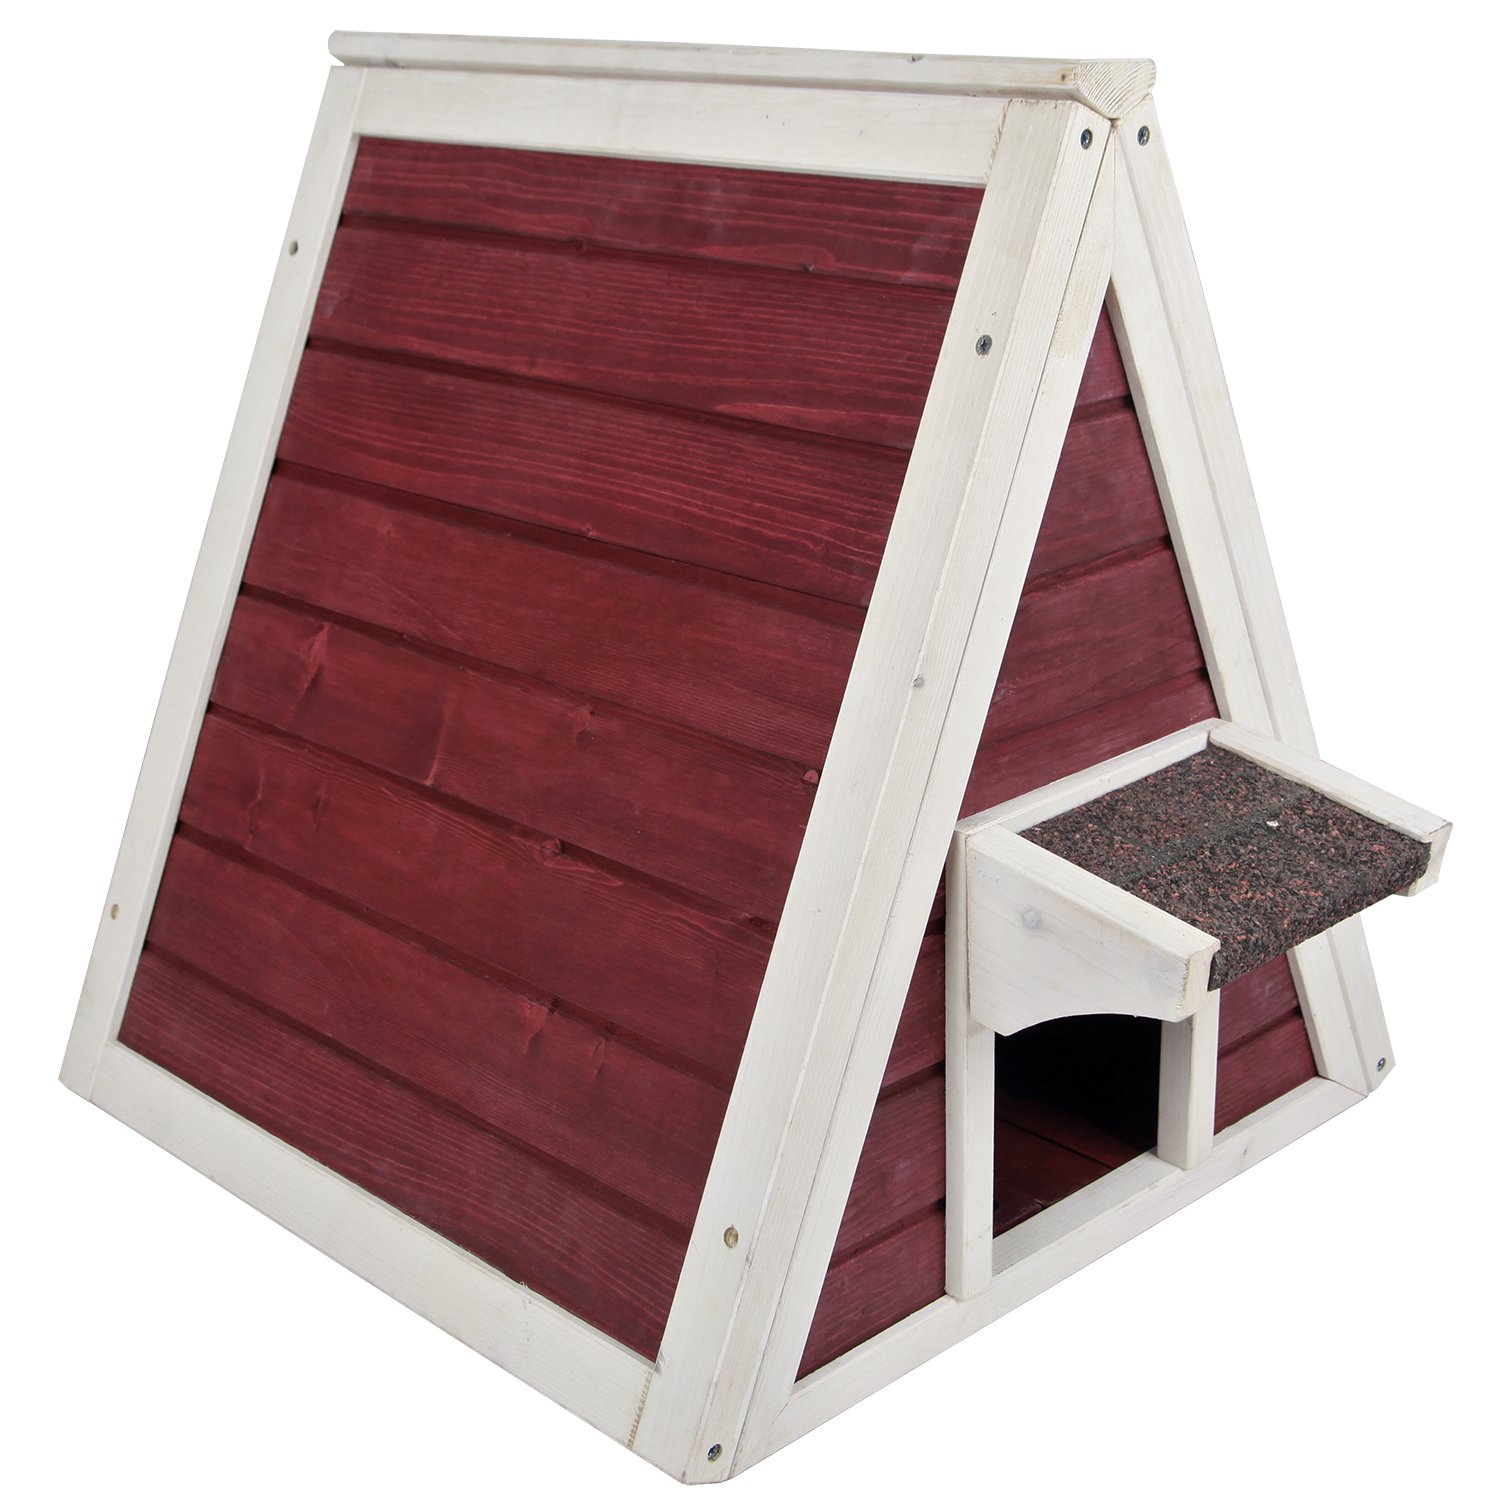 Petsfit Outdoor/Indoor Cat Shelter For Feral Cat, Wooden Cat House with Eave, Wine Red Cat Codo